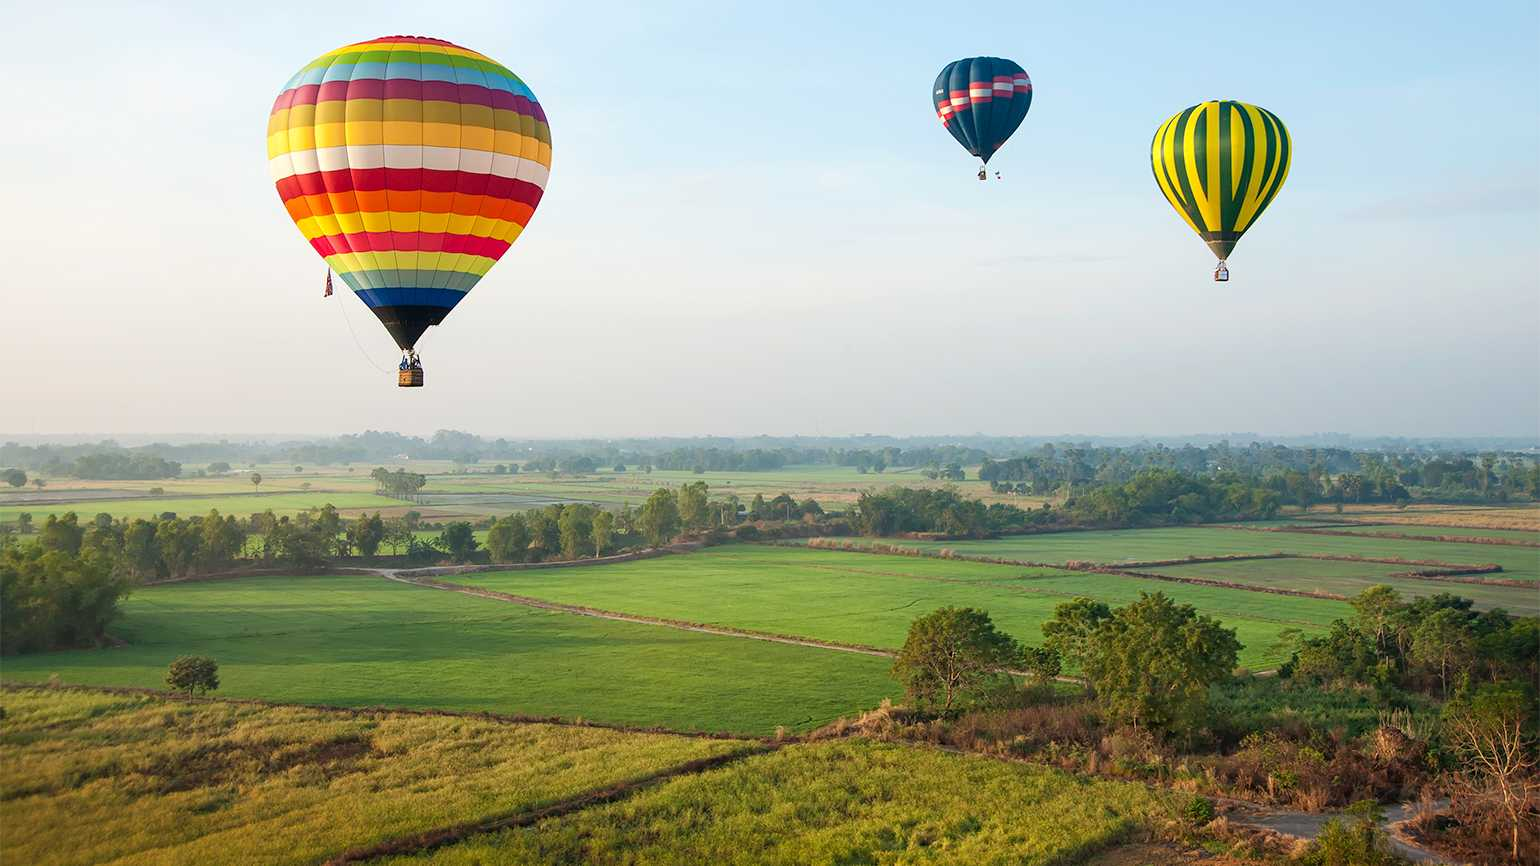 Hot air balloons float over a scenic countryside